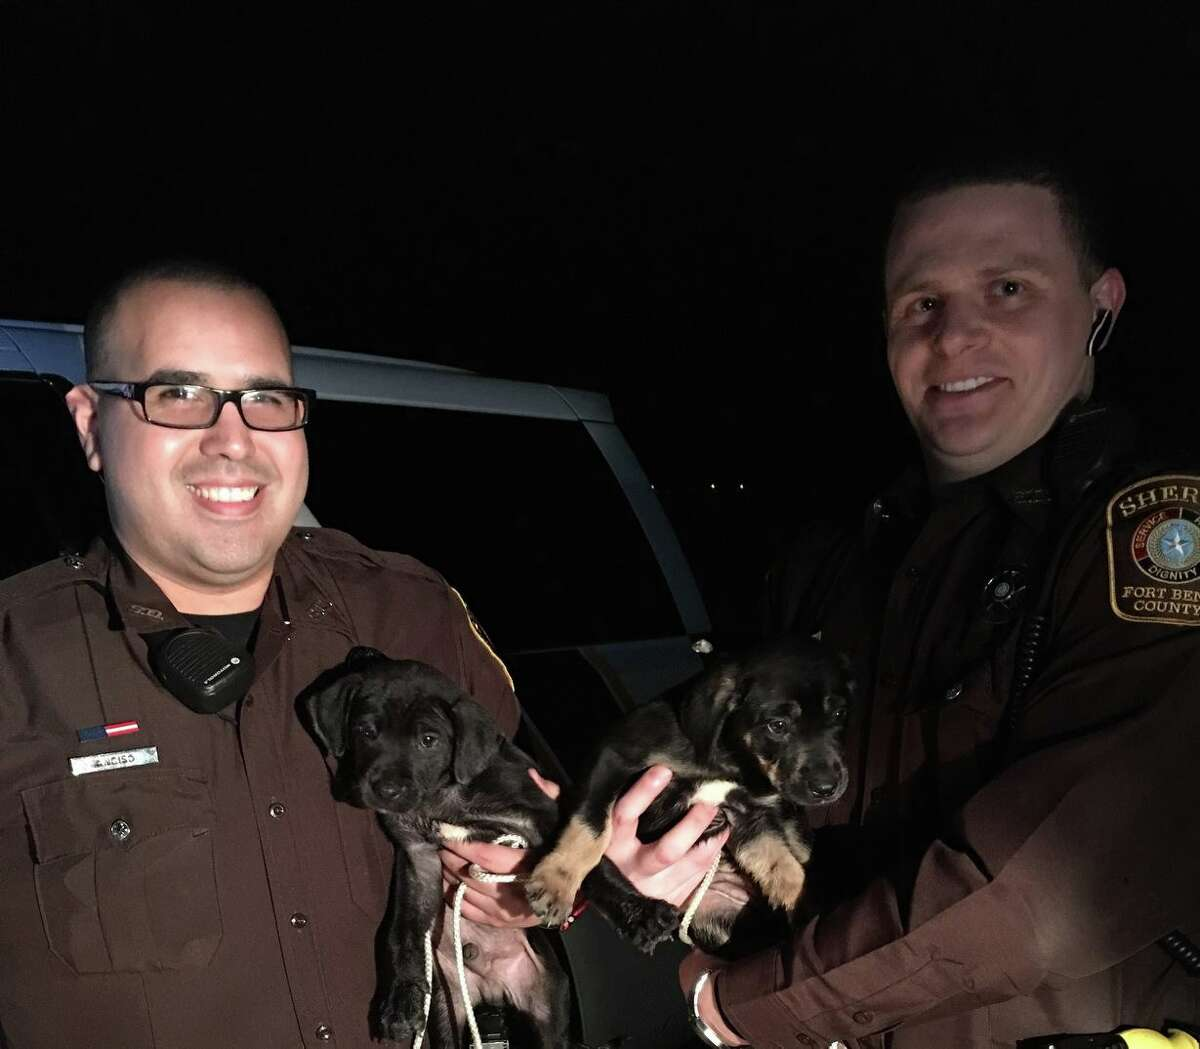 Fort Bend County deputies D. Lytton and M. Anciso are doing their part to make Monday better by adopting tiny puppies from the side of the road.